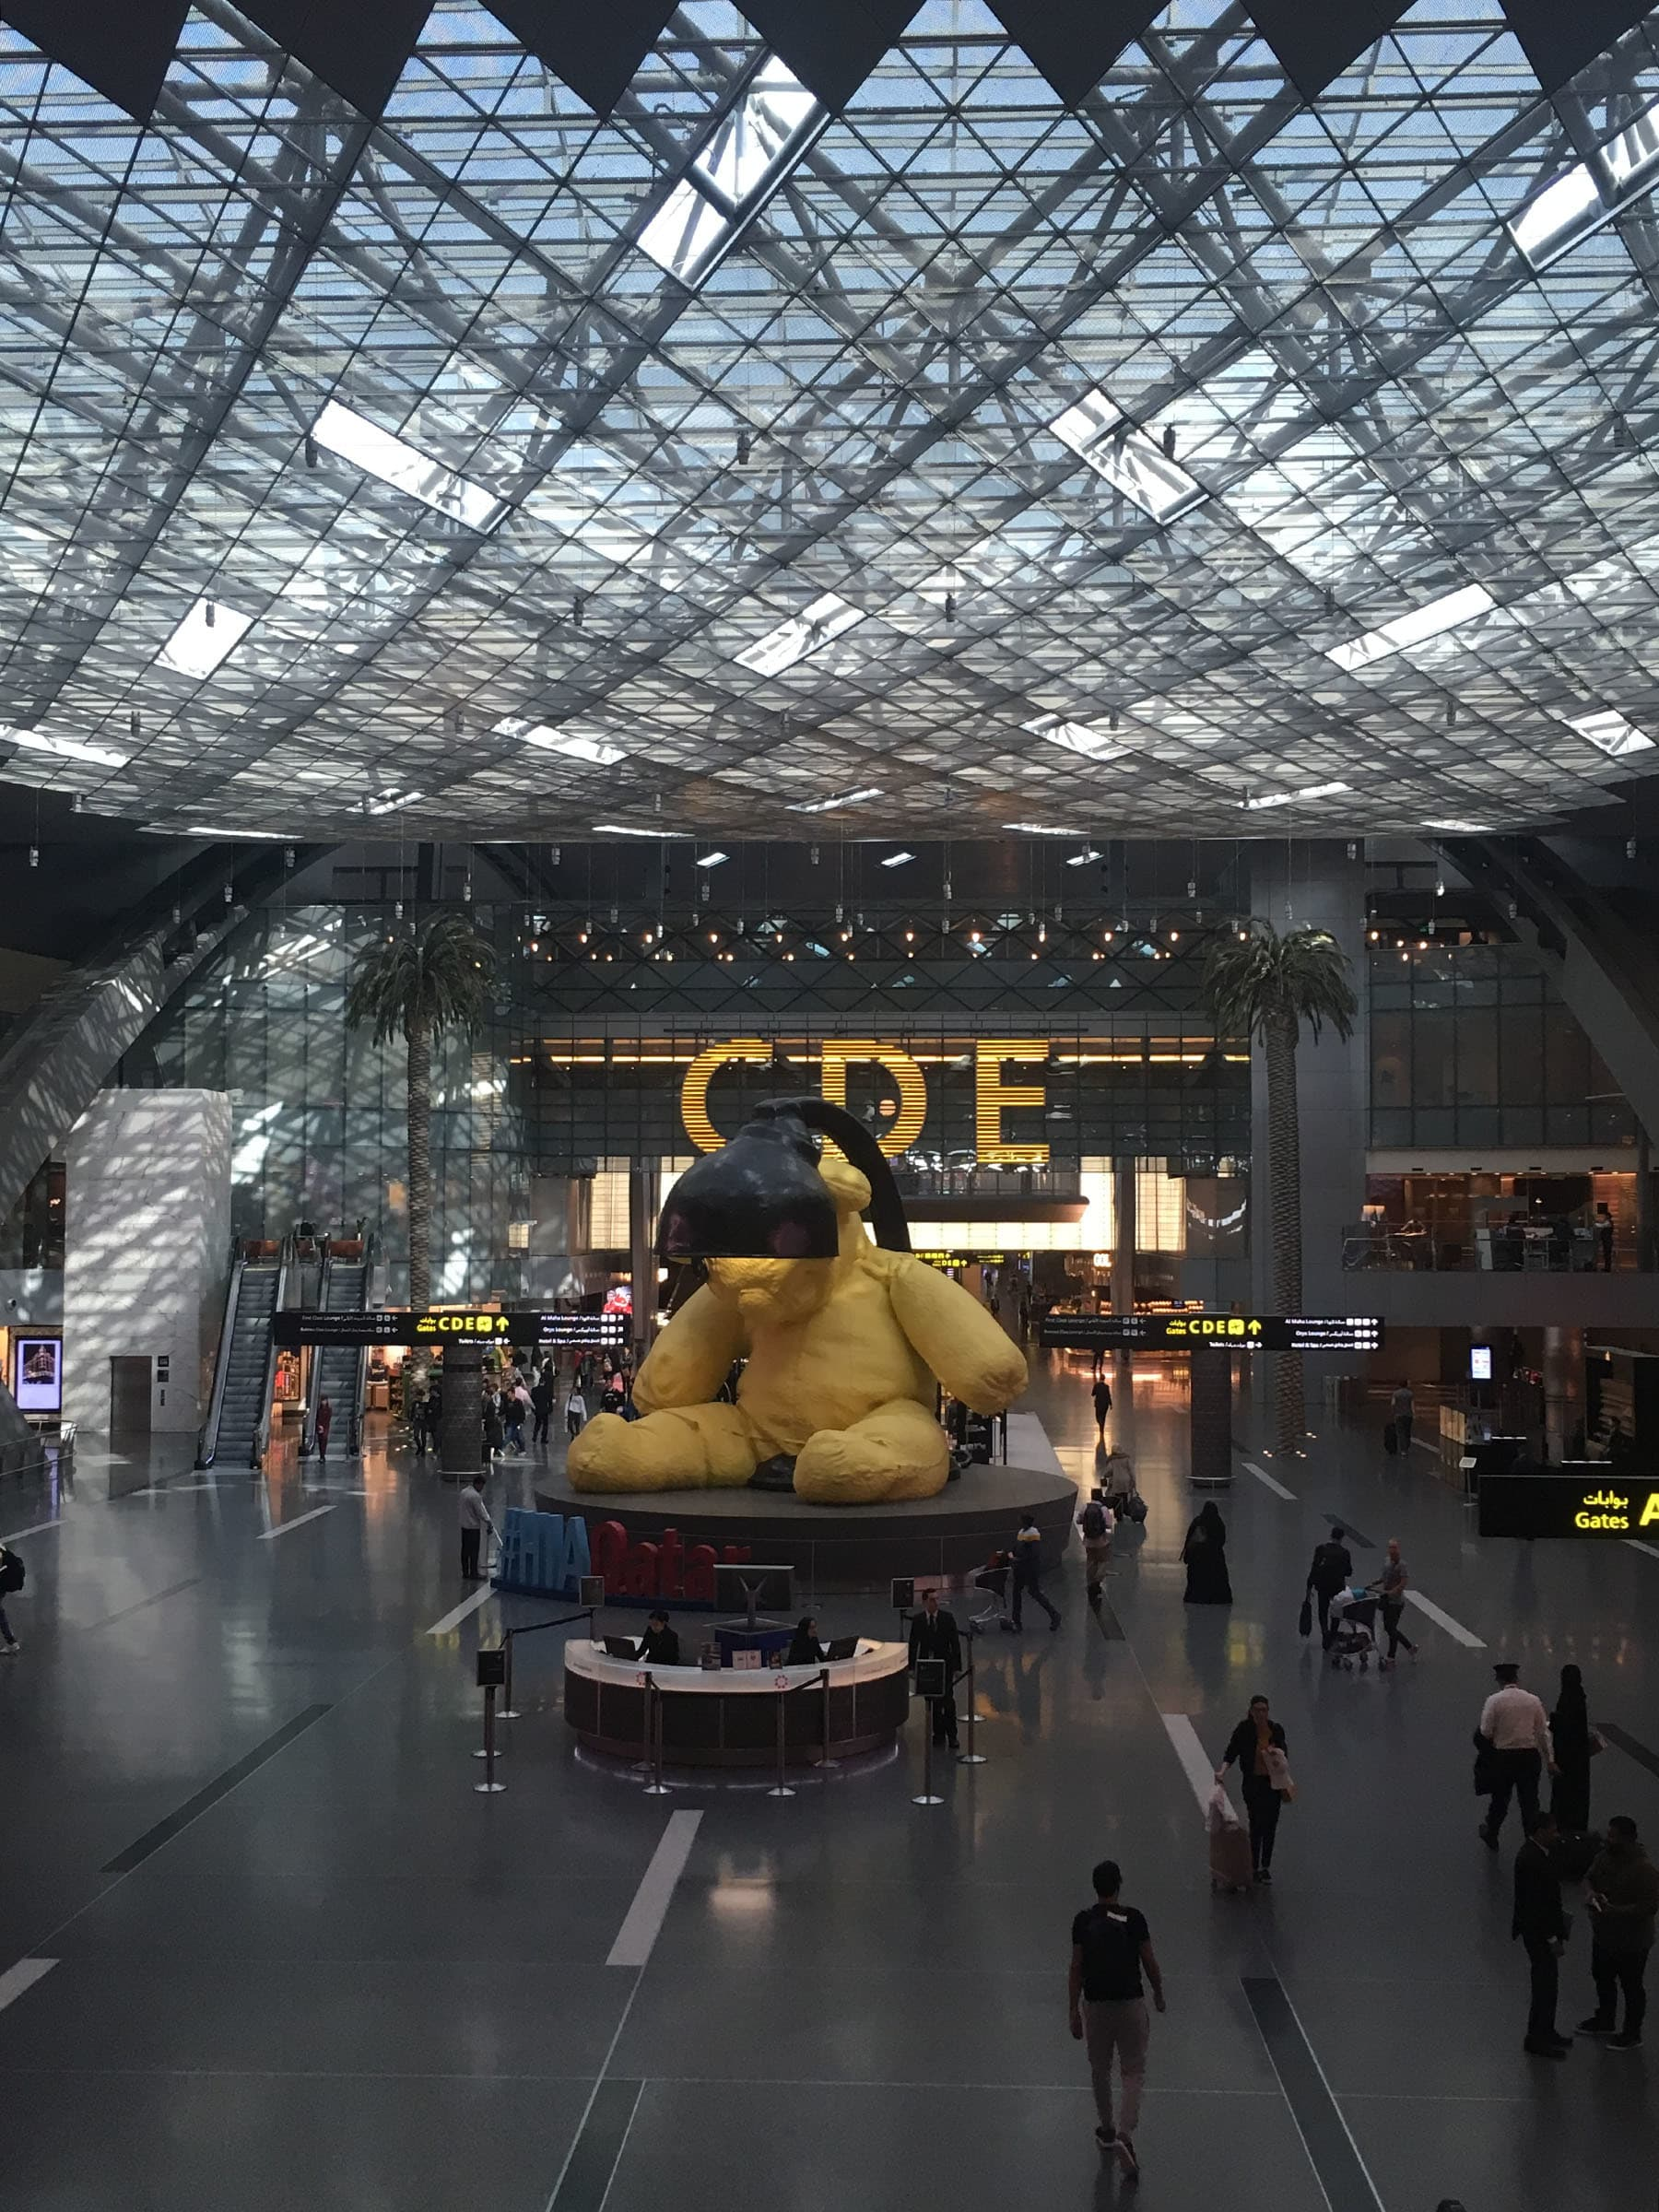 'Untitled Lamp Bear' by Swiss artist Urs Fischer at Hamad International Airport.